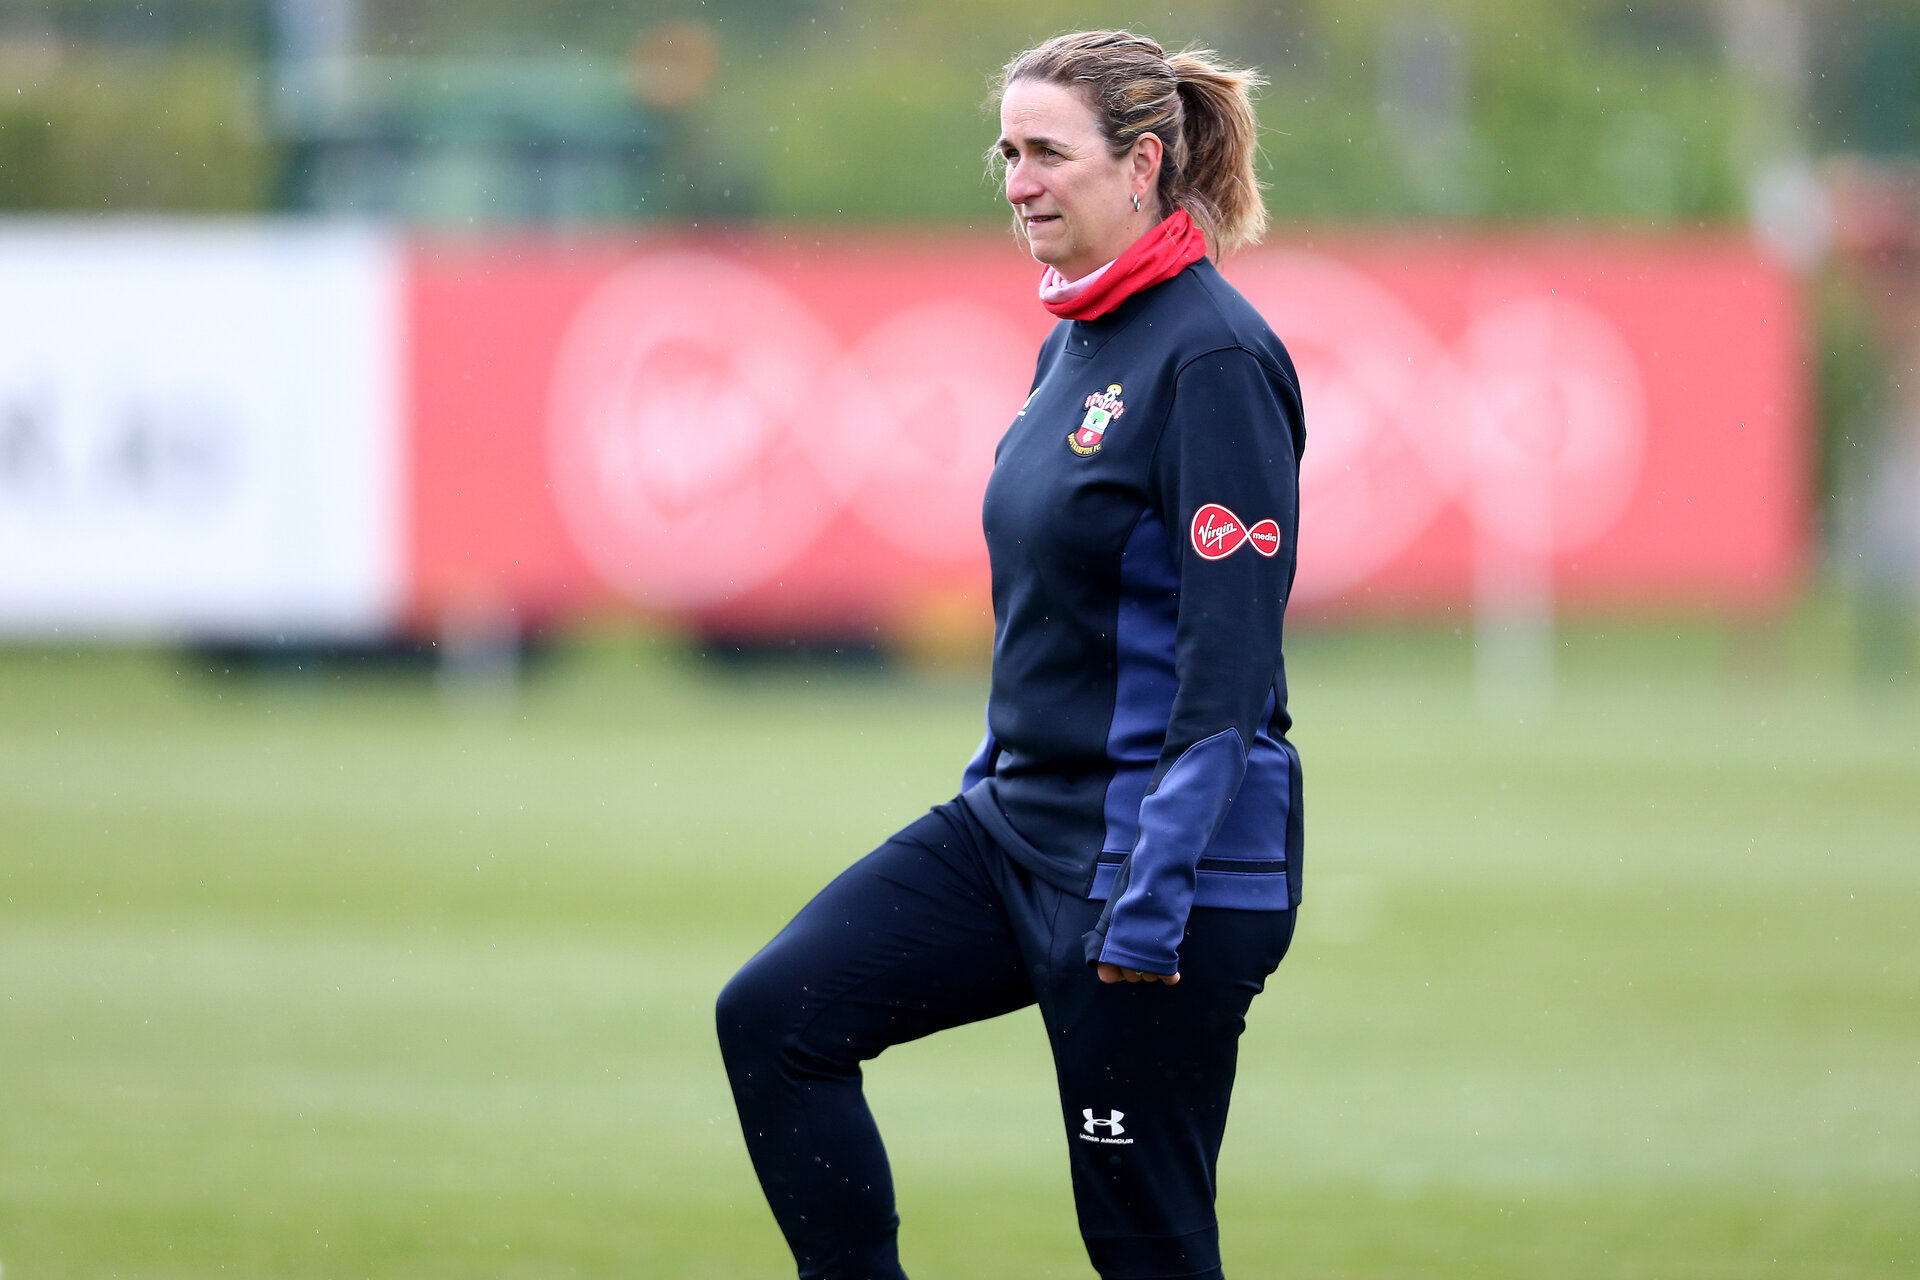 SOUTHAMPTON, ENGLAND - MAY 12: Marieanne Spacey-Cale during Southampton Women's training session at Staplewood Training Ground on May 12, 2021 in Southampton, England.  (Photo by Isabelle Field/Southampton FC via Getty Images)